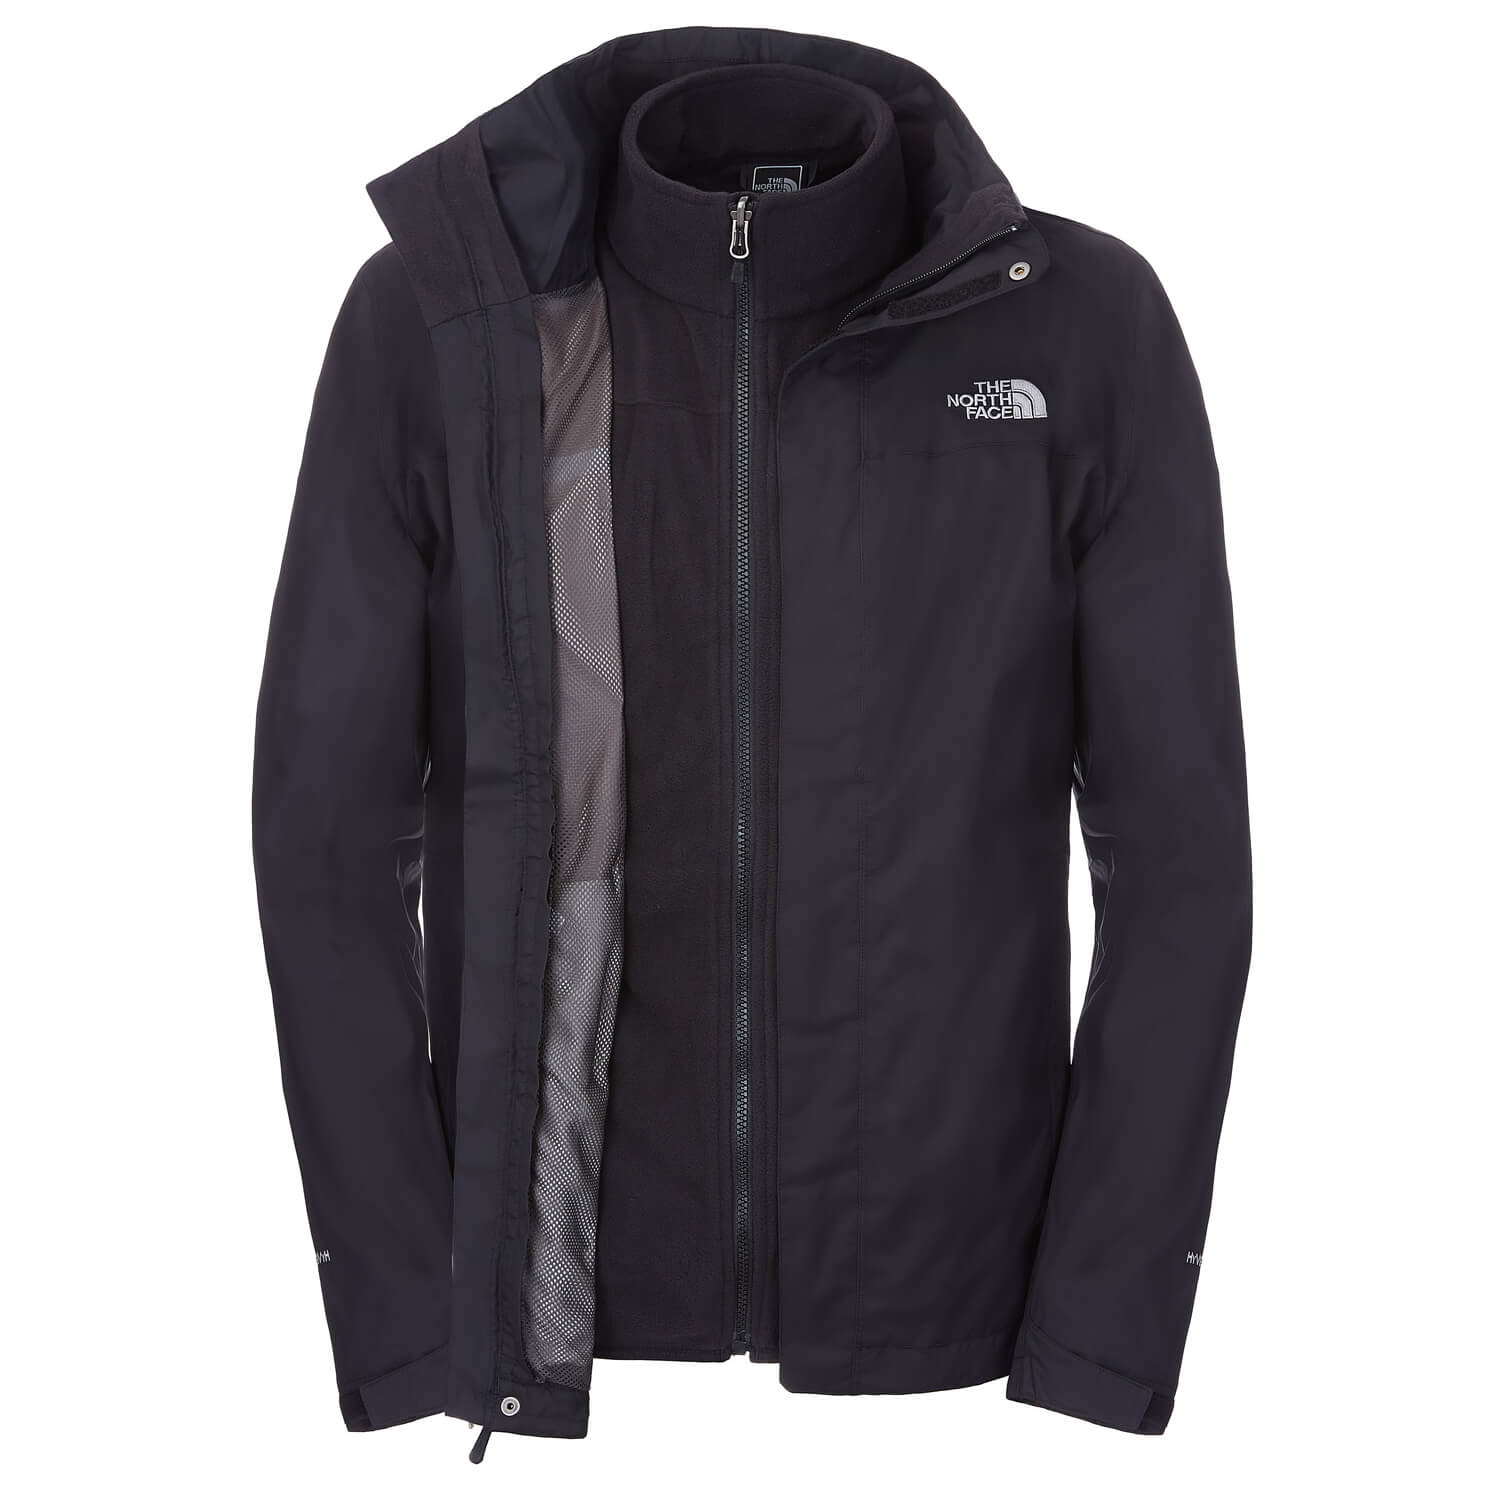 72c39c4ad4d The North Face Evolve II Triclimate Jacket - 3-In-1 Jacket Men s ...